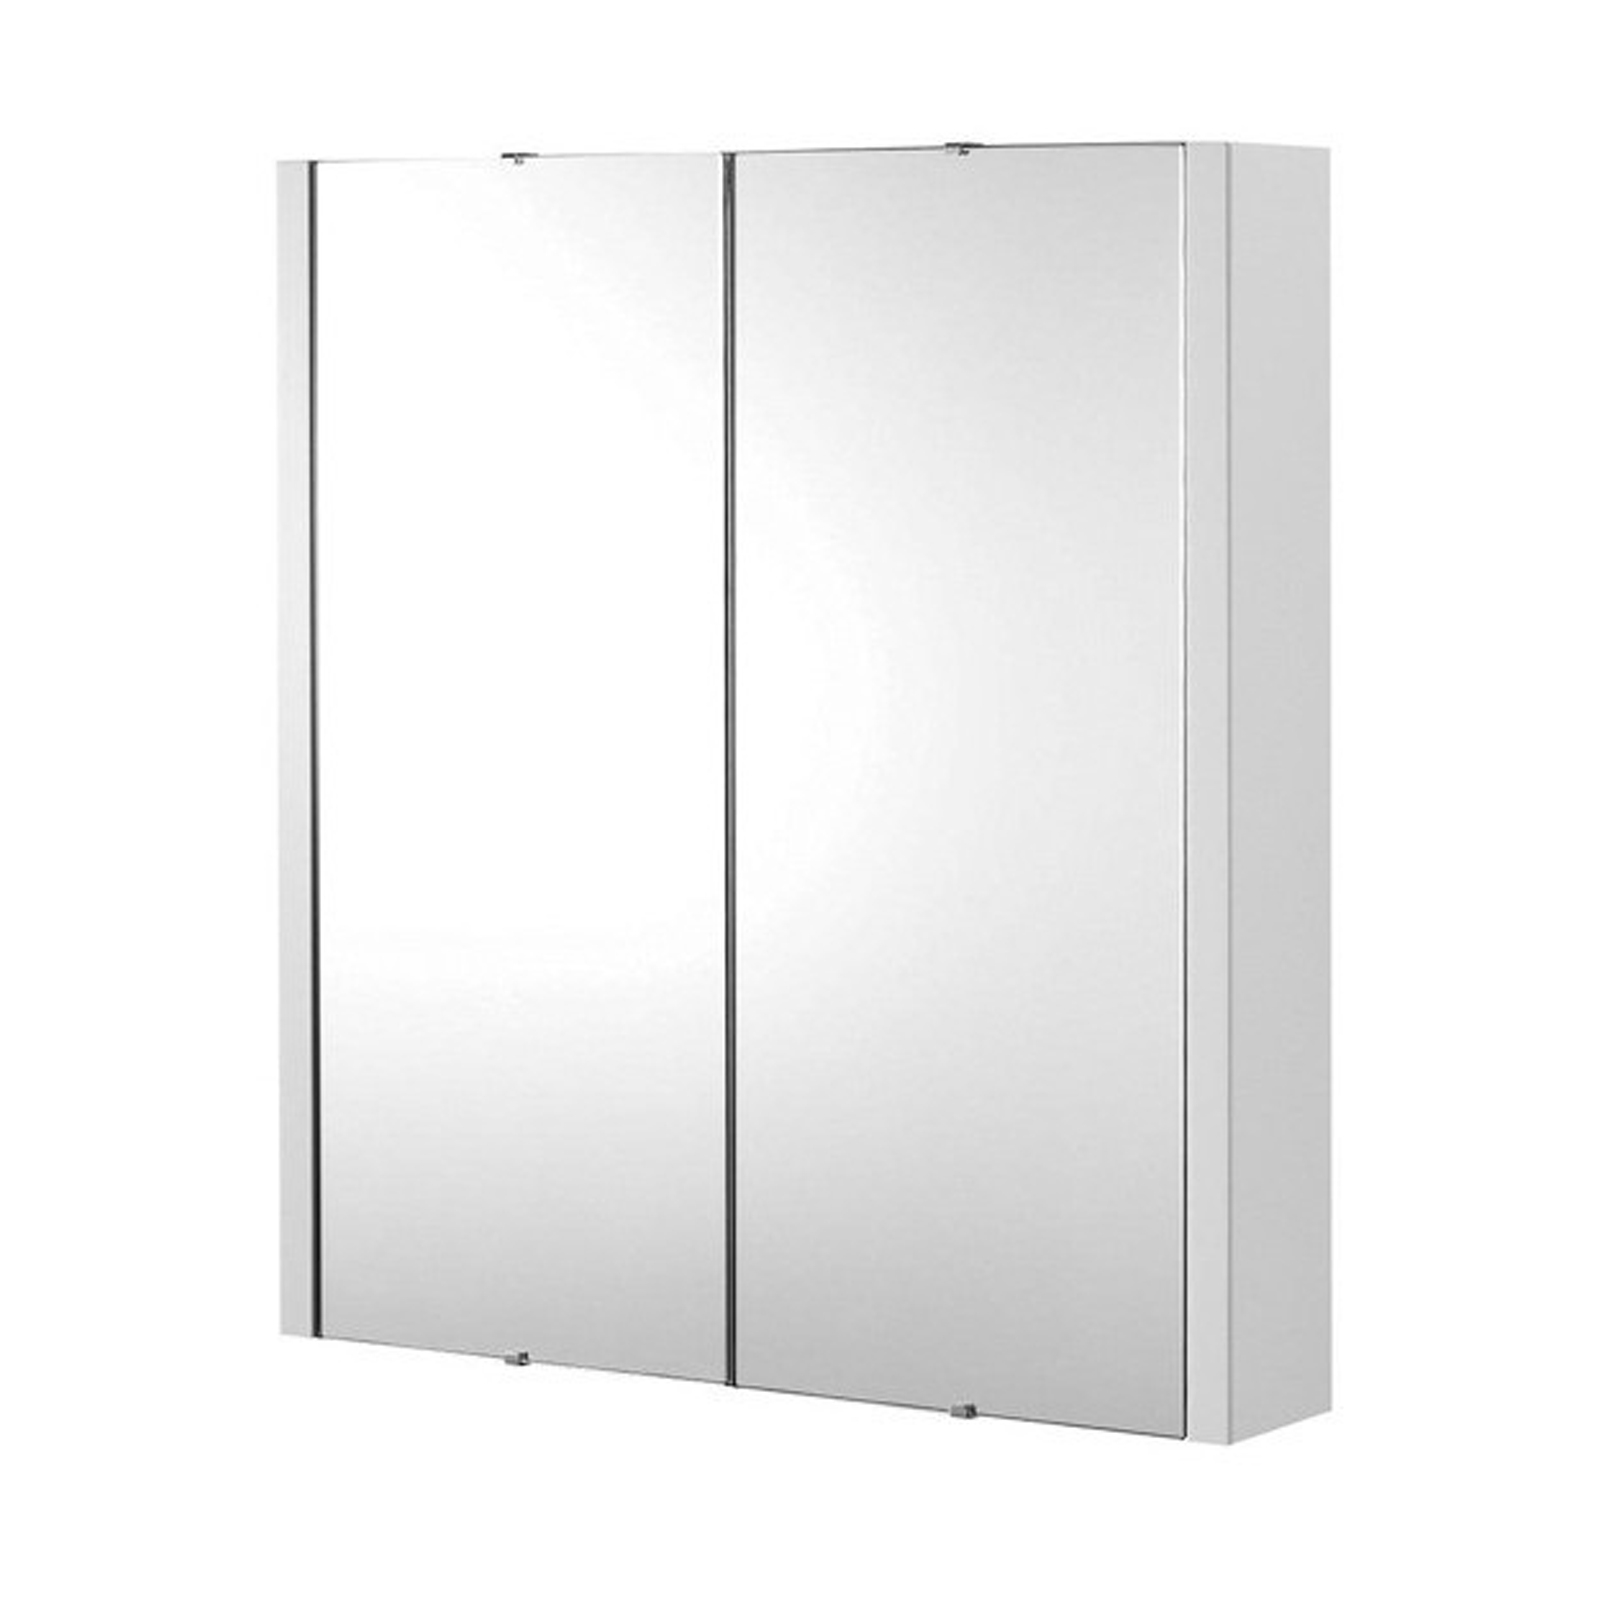 Permalink to White Gloss Mirrored Bathroom Wall Cabinet